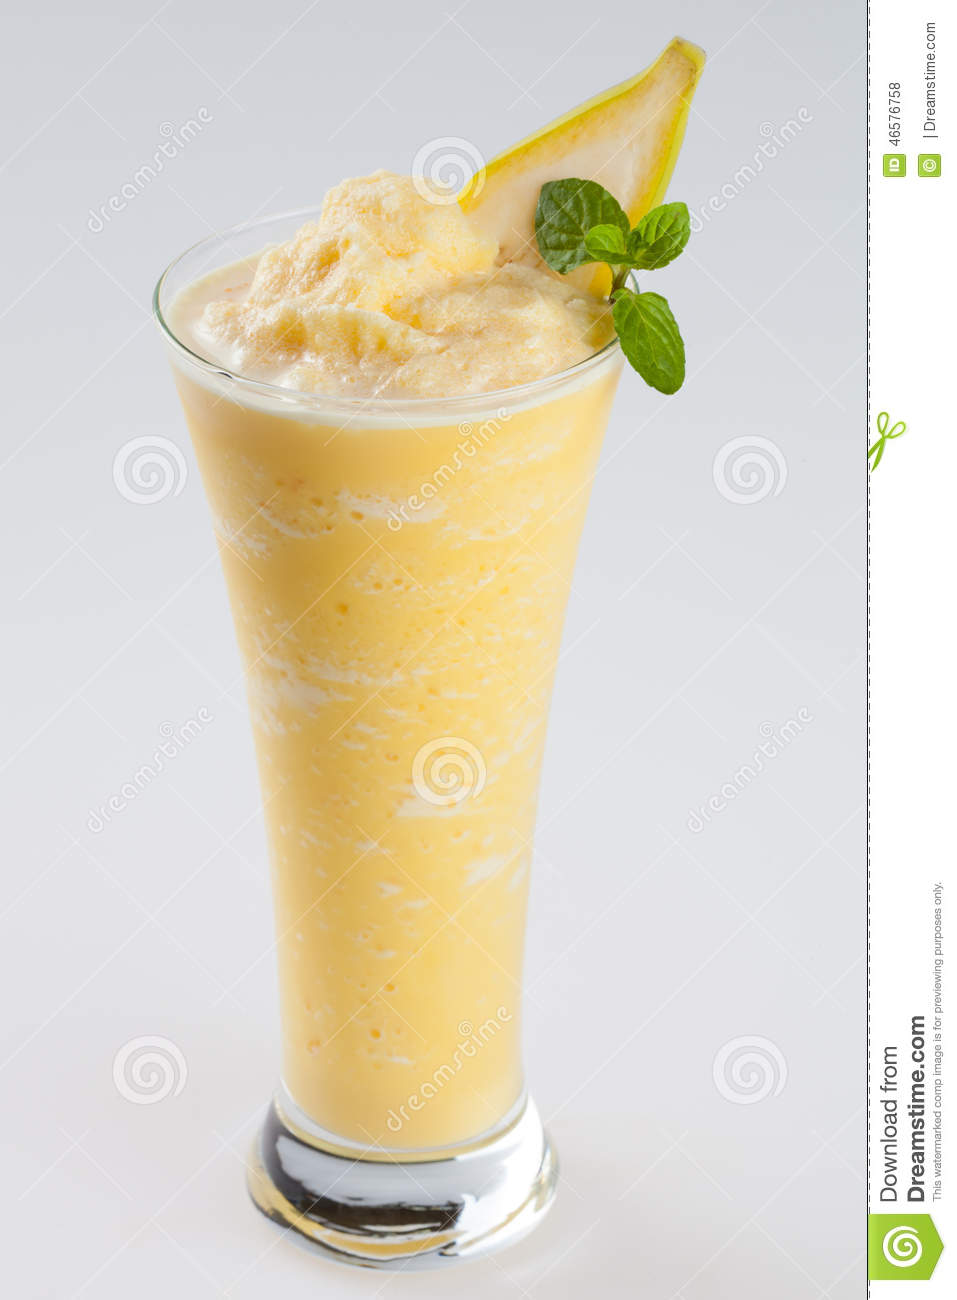 how to make banana smoothie with ice